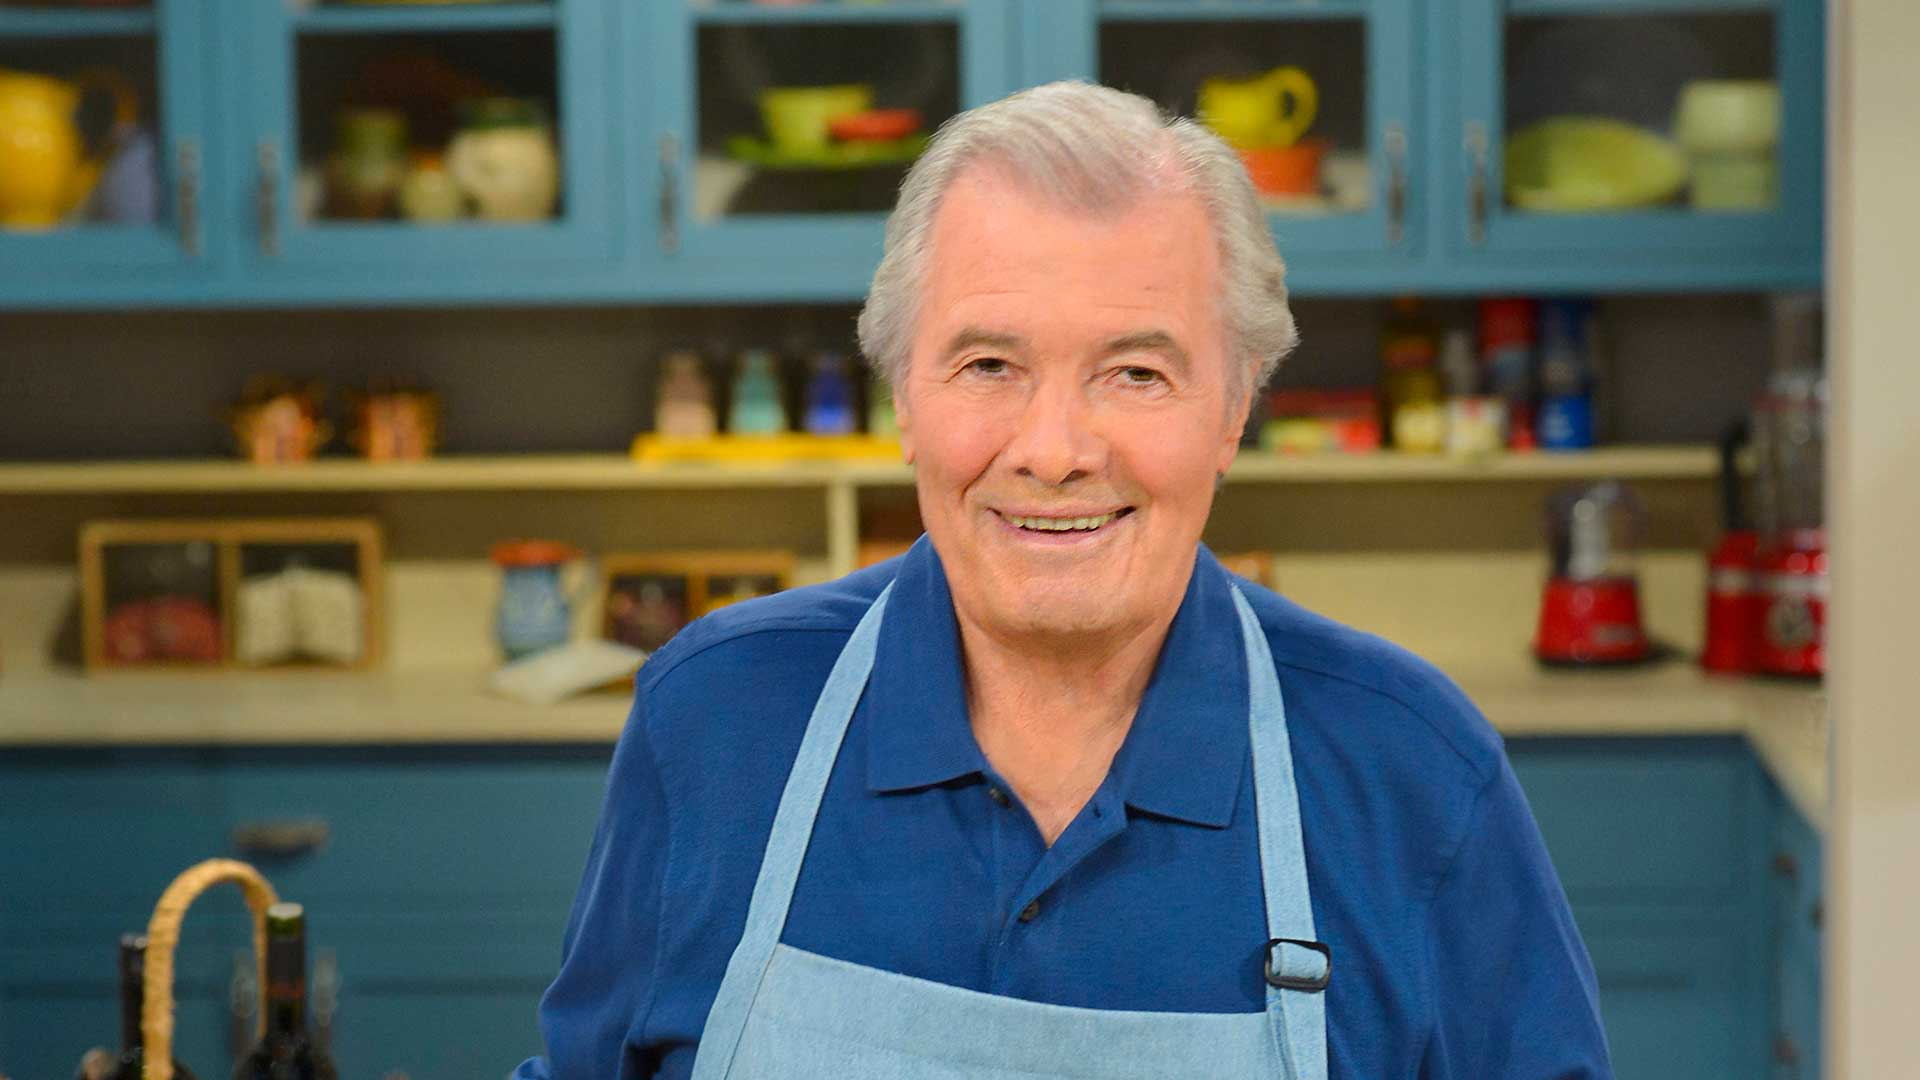 Jacques Pépin on the set of Jacques Pépin Heart and Soul.